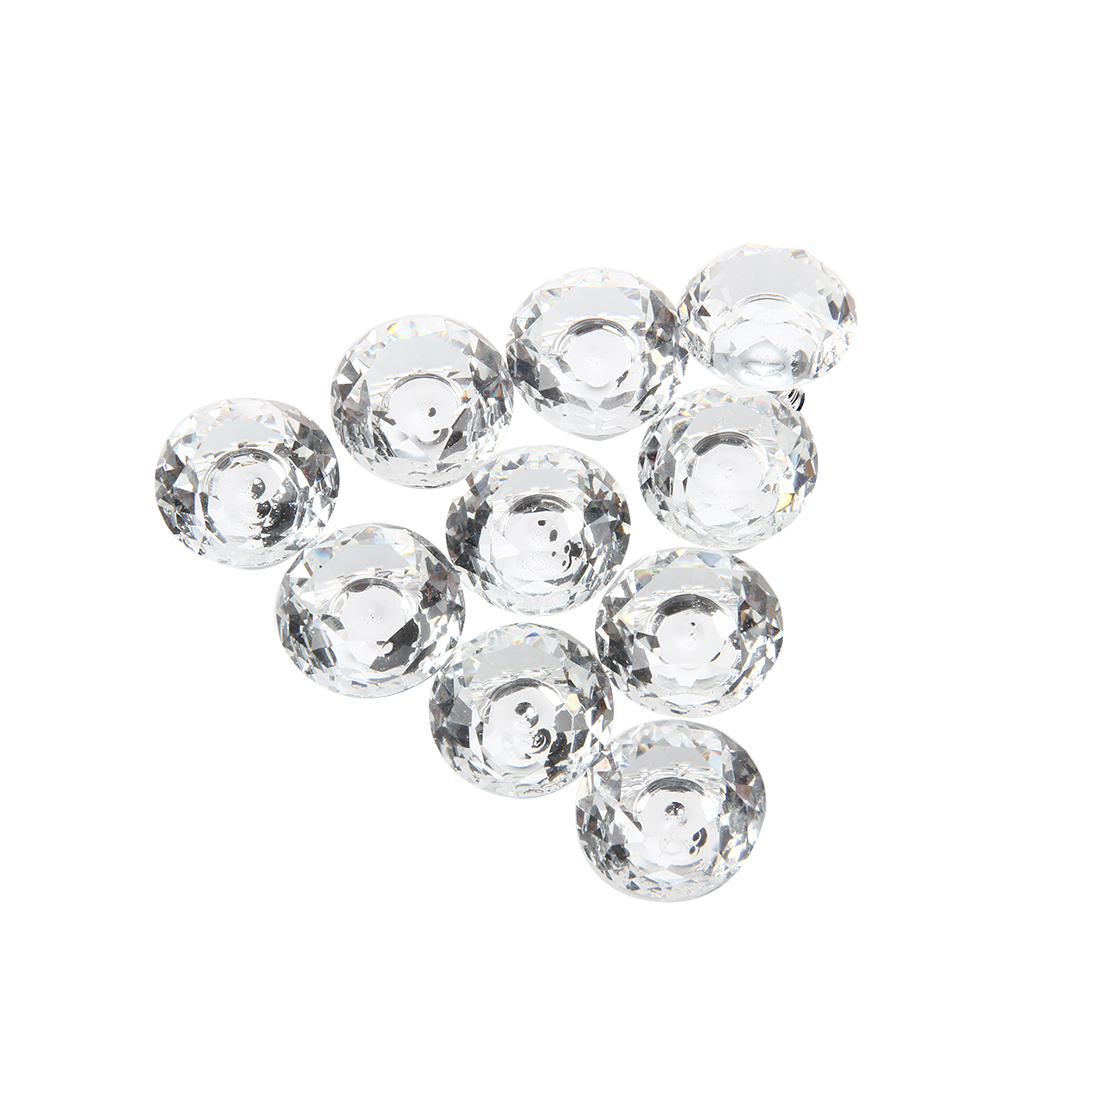 10pcs 30mm Diamond Crystal Glass Door Drawer Cabinet Furniture Handle Knob Screw css clear crystal glass cabinet drawer door knobs handles 30mm